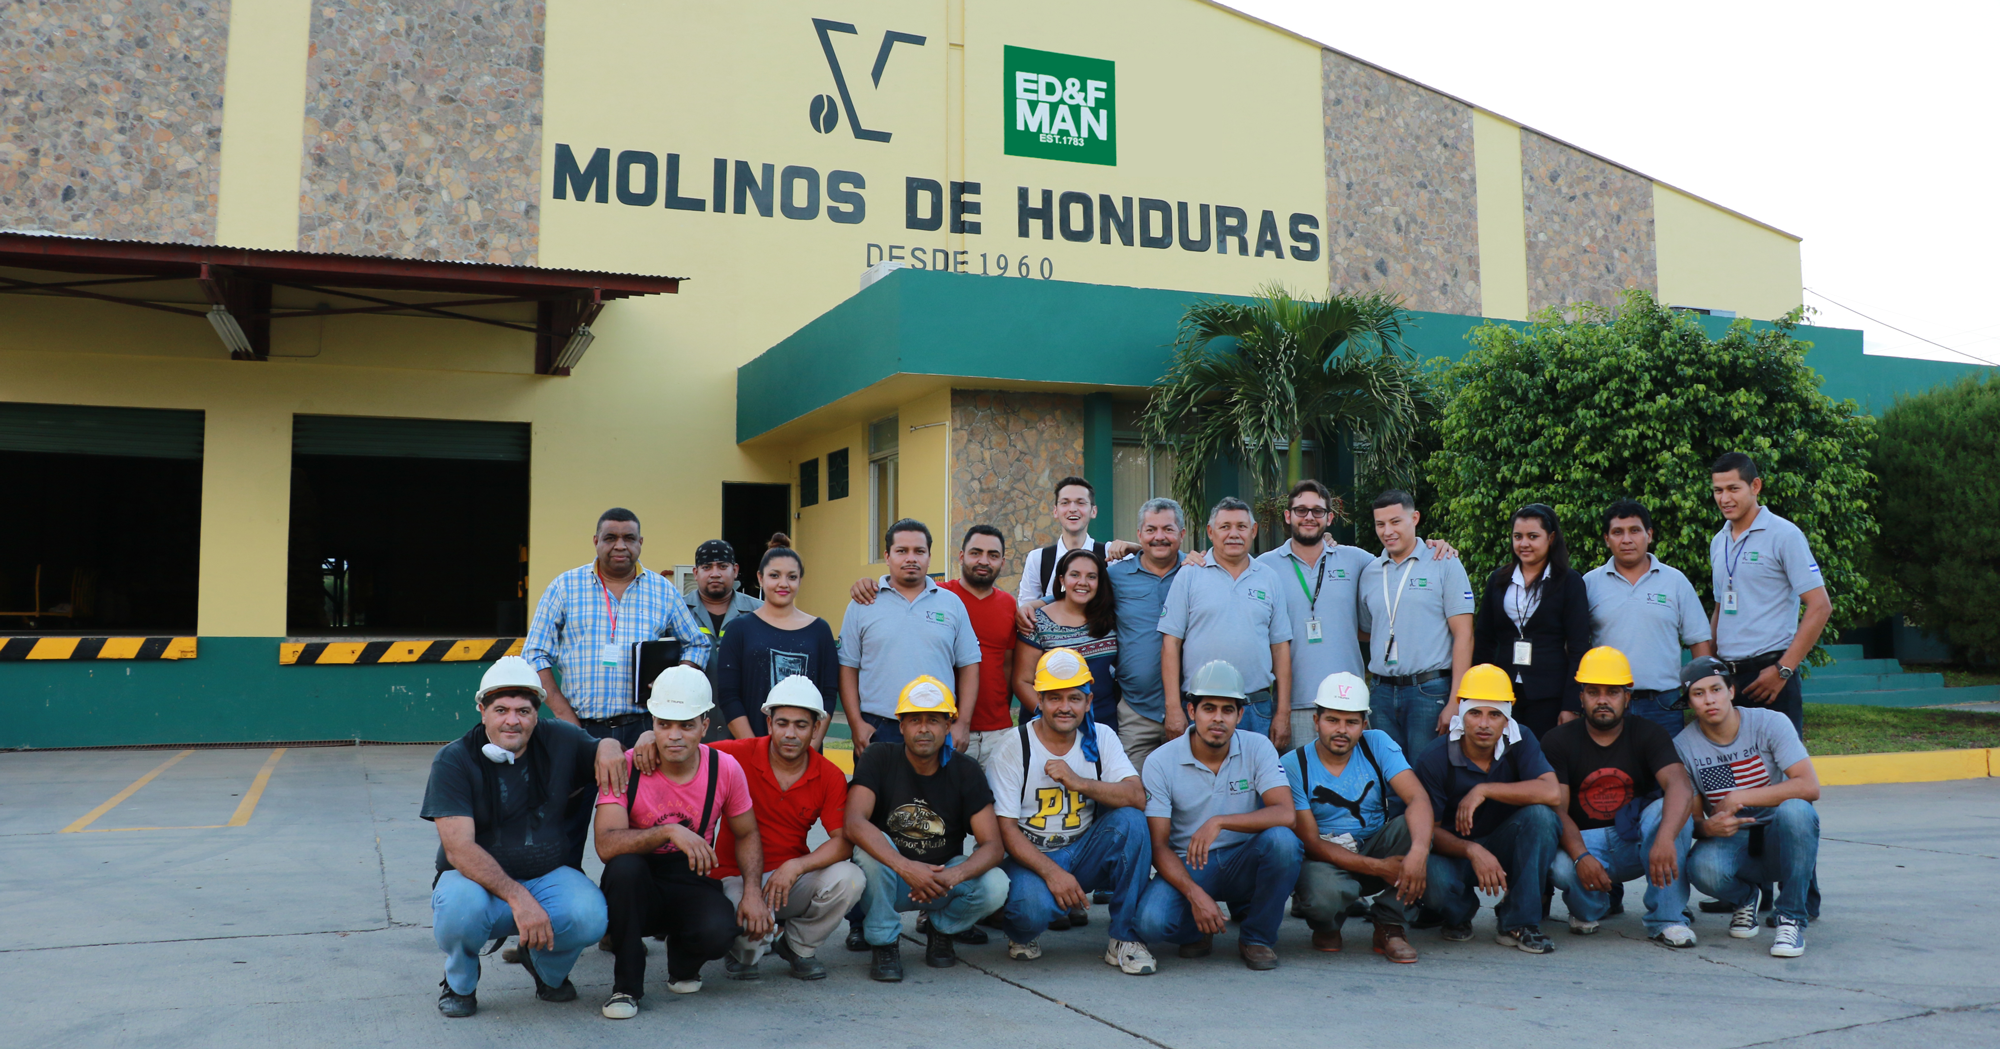 About ED&F Man – team of employees at a coffee mill in Honduras